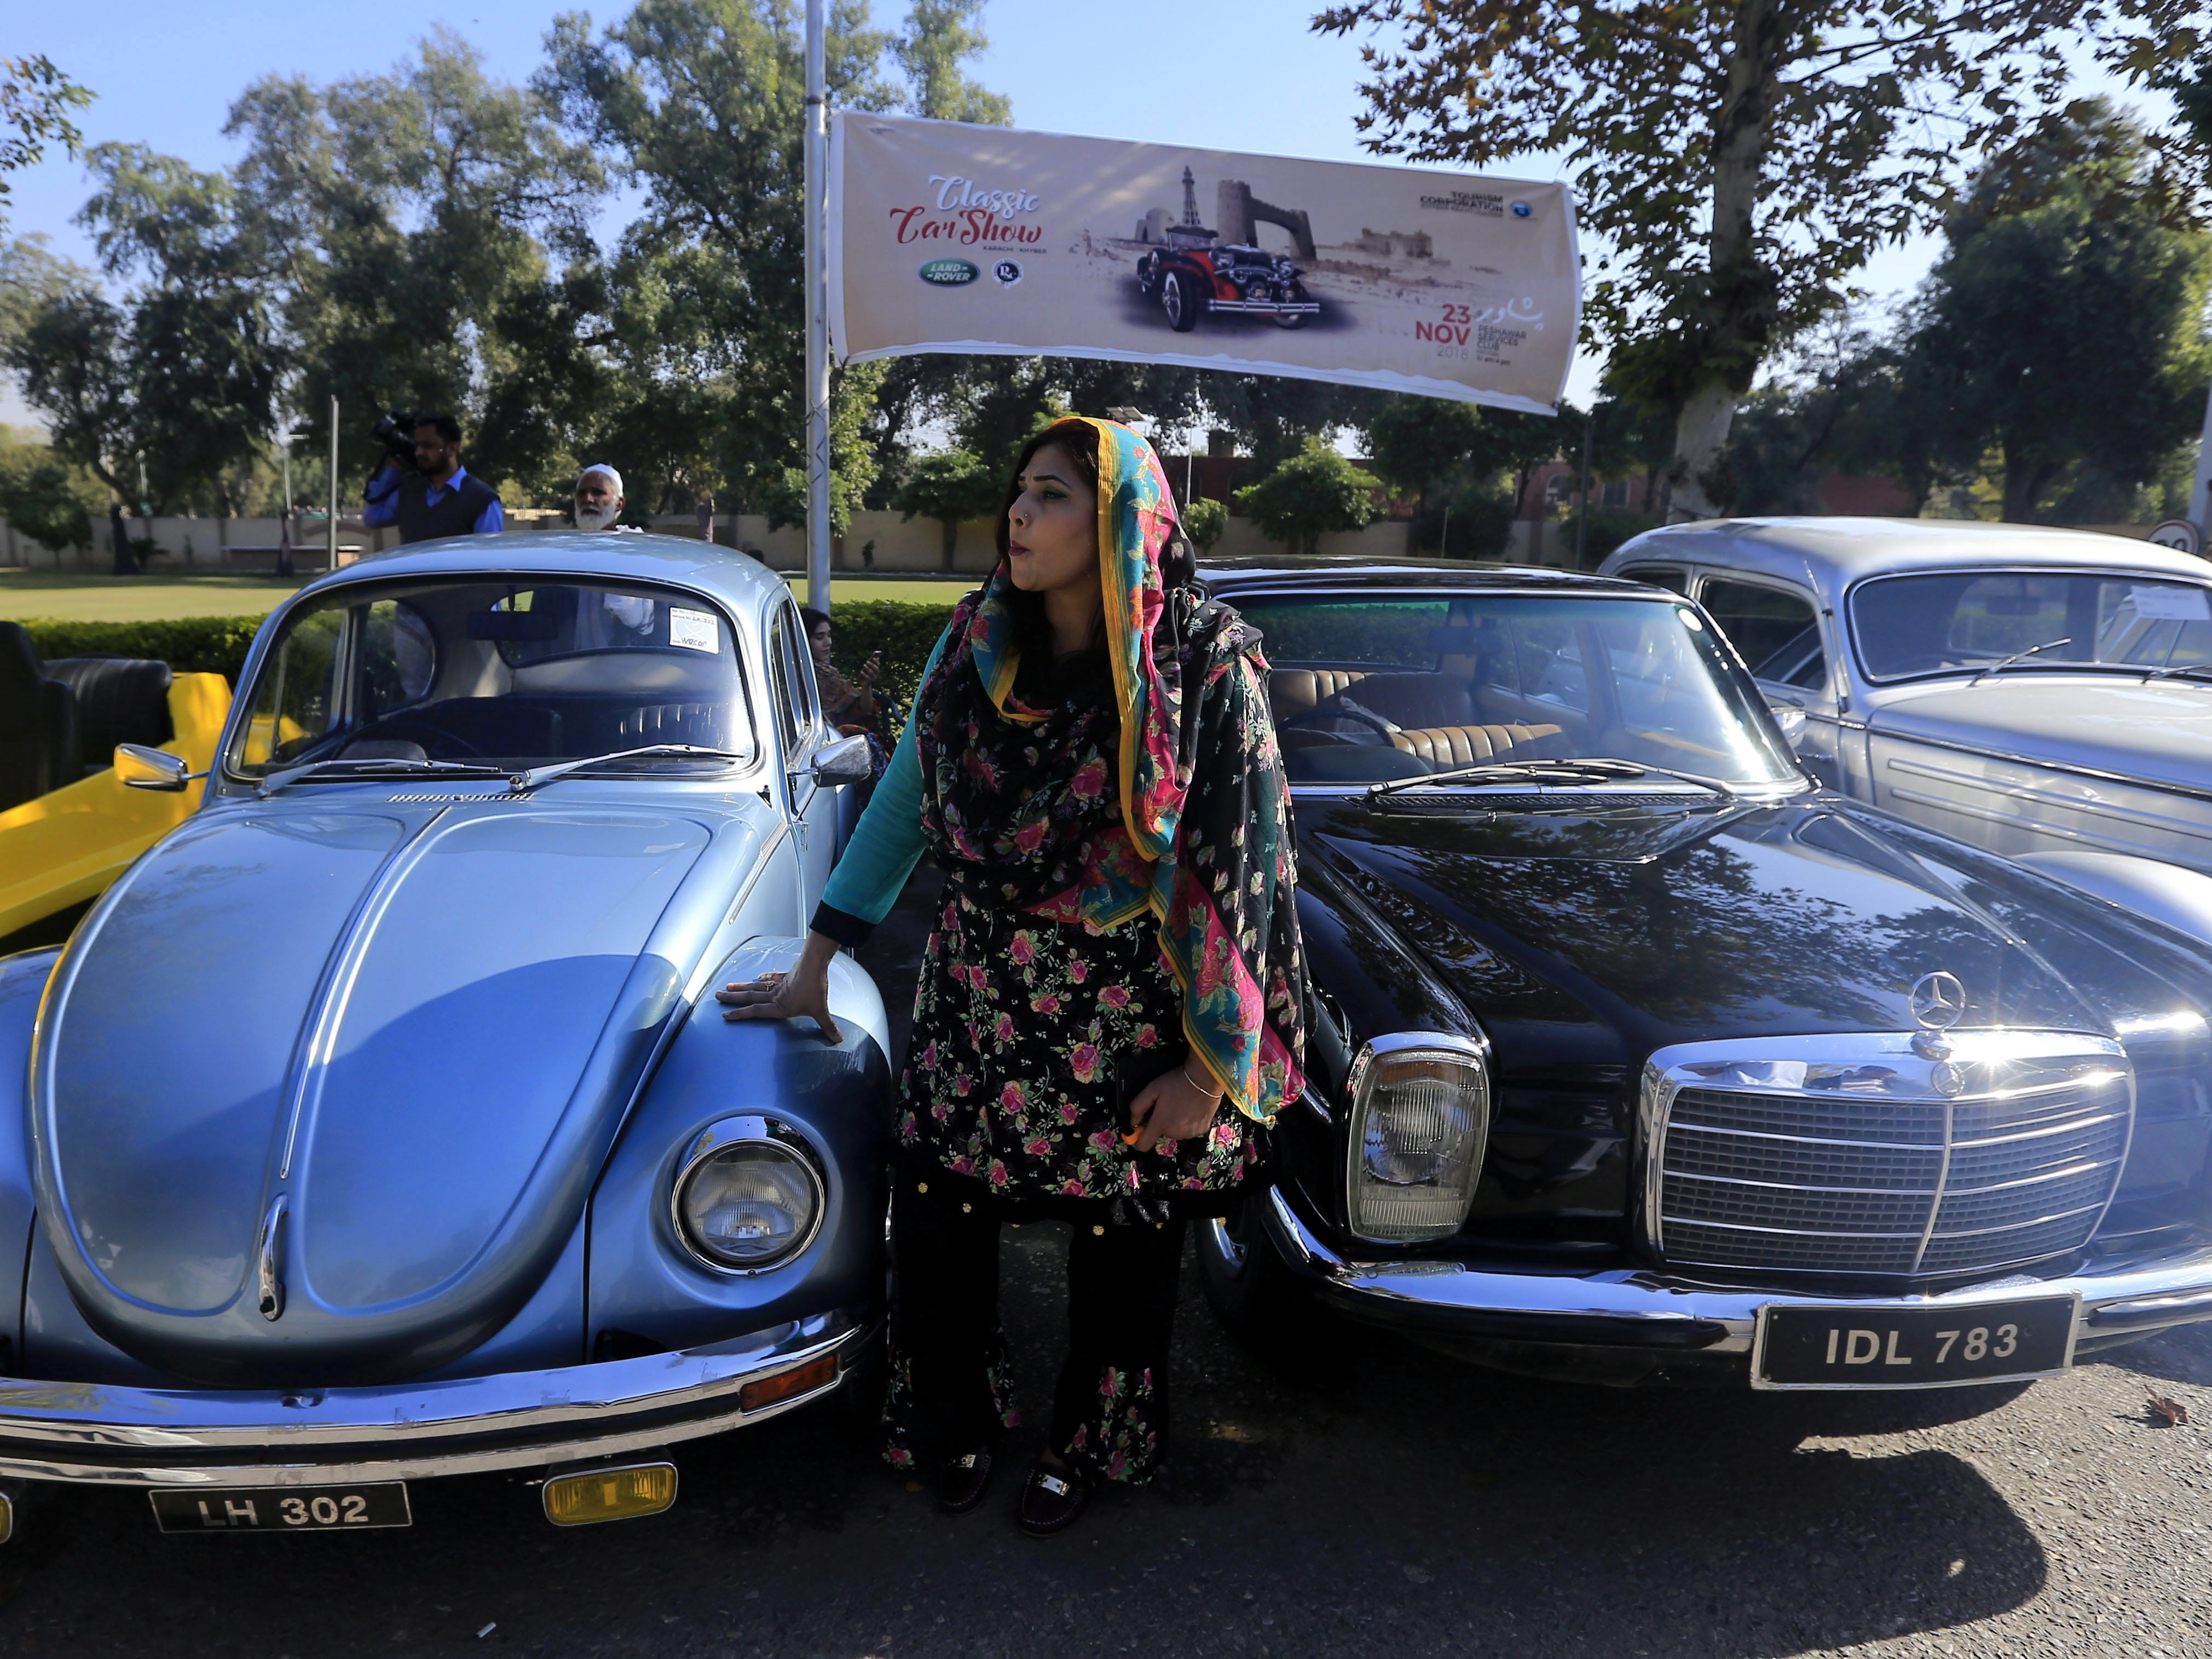 epa07185124 A Pakistani women stands near vintage cars on display during a show organized by the Vintage and Classic Car Club of Pakistan in Peshawar, Pakistan, 23 November 2018. More than 60 vintage and classic cars were on display from all across Pakistan, some coming all the way from Karachi and heading on to Khyber.  EPA-EFE/BILAWAL ARBAB ORG XMIT: PSH01